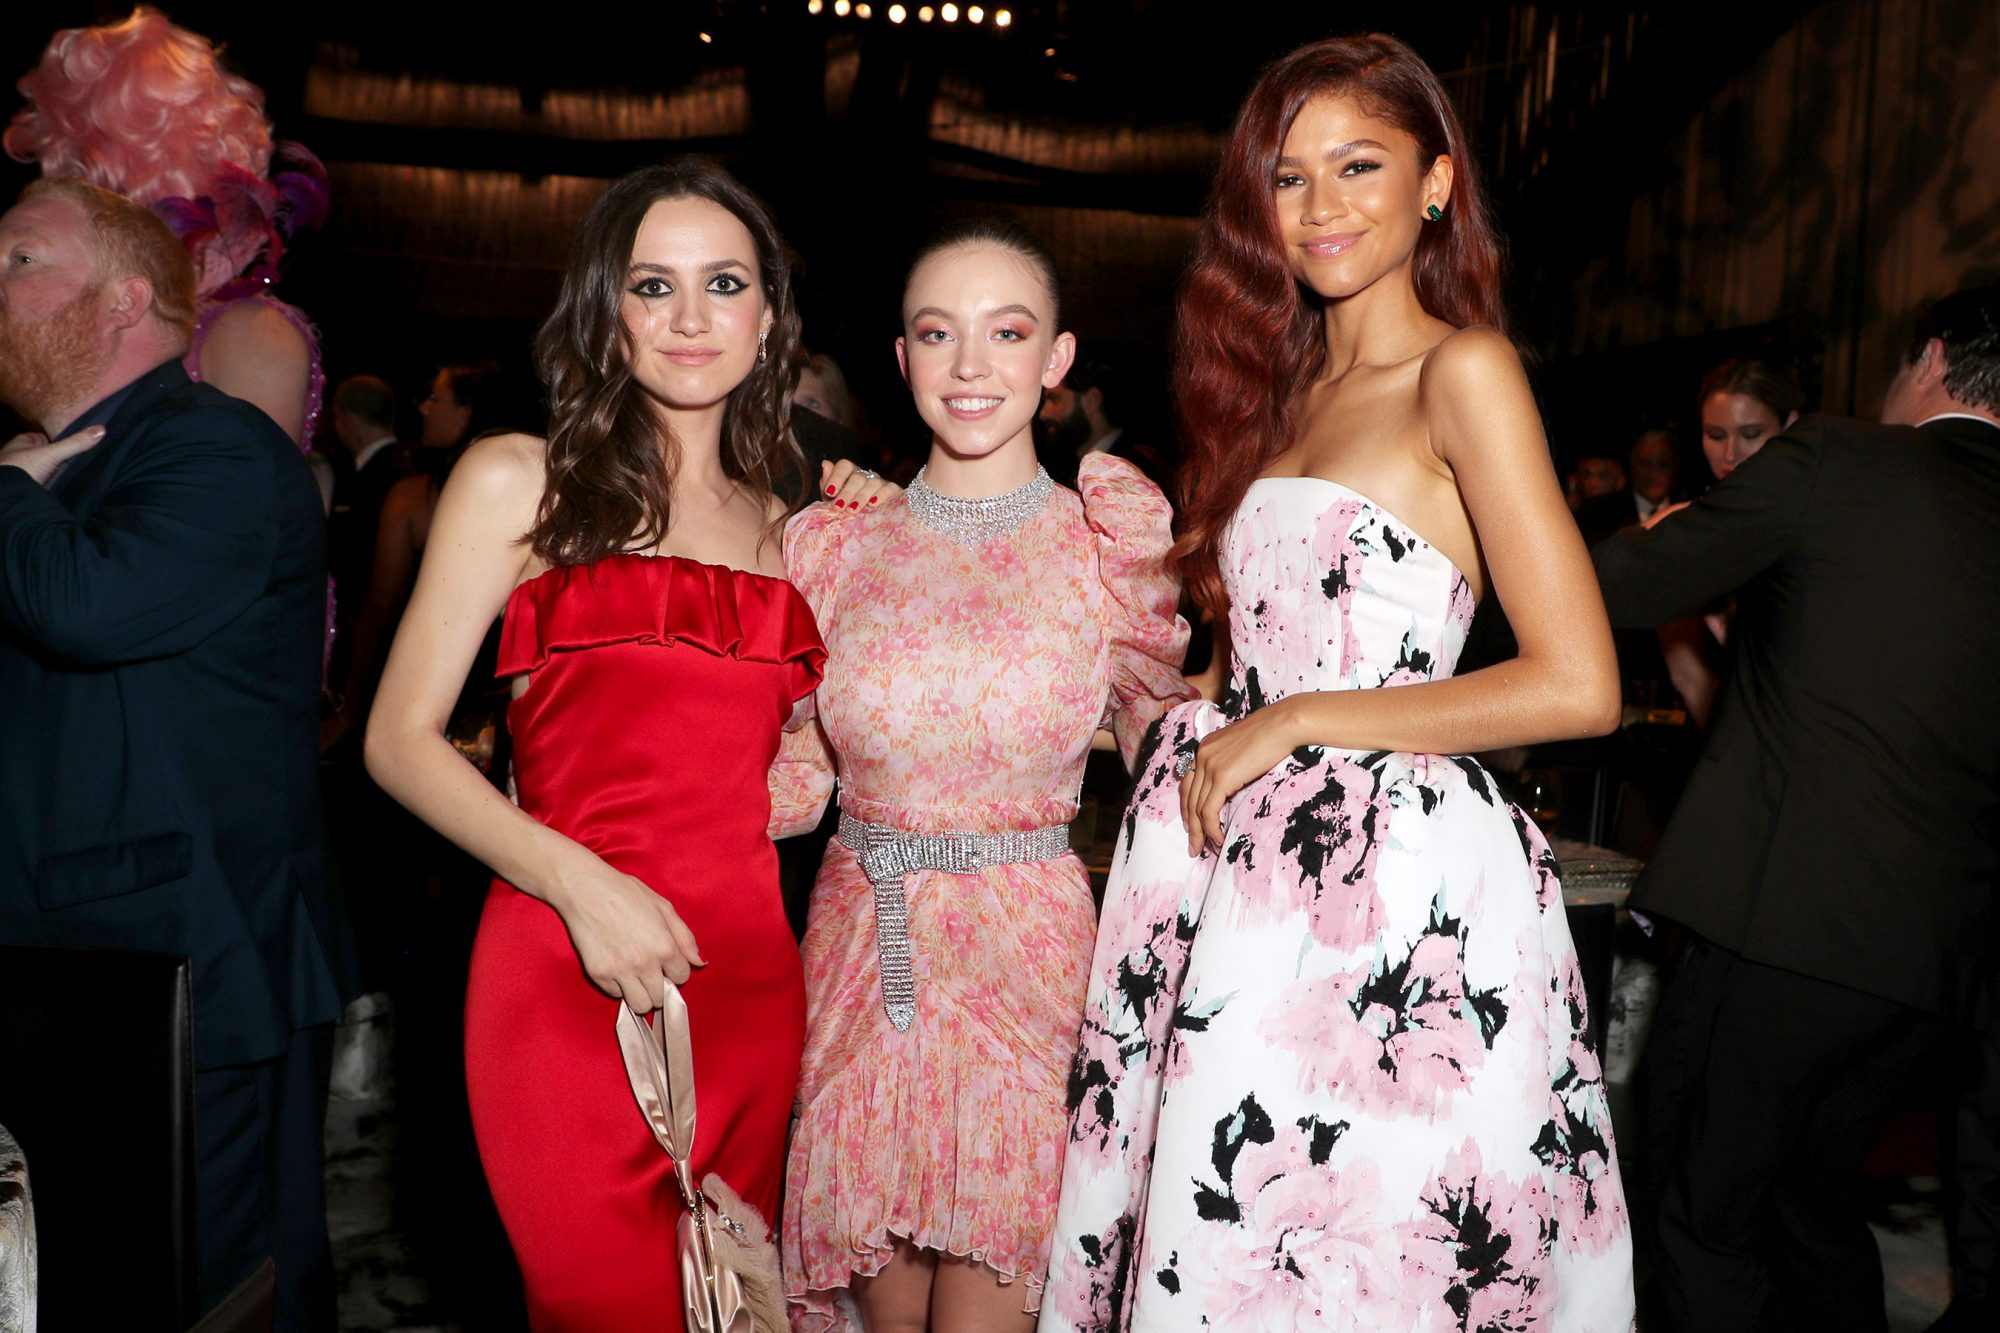 Maude Apatow, Sydney Sweeney and Zendaya